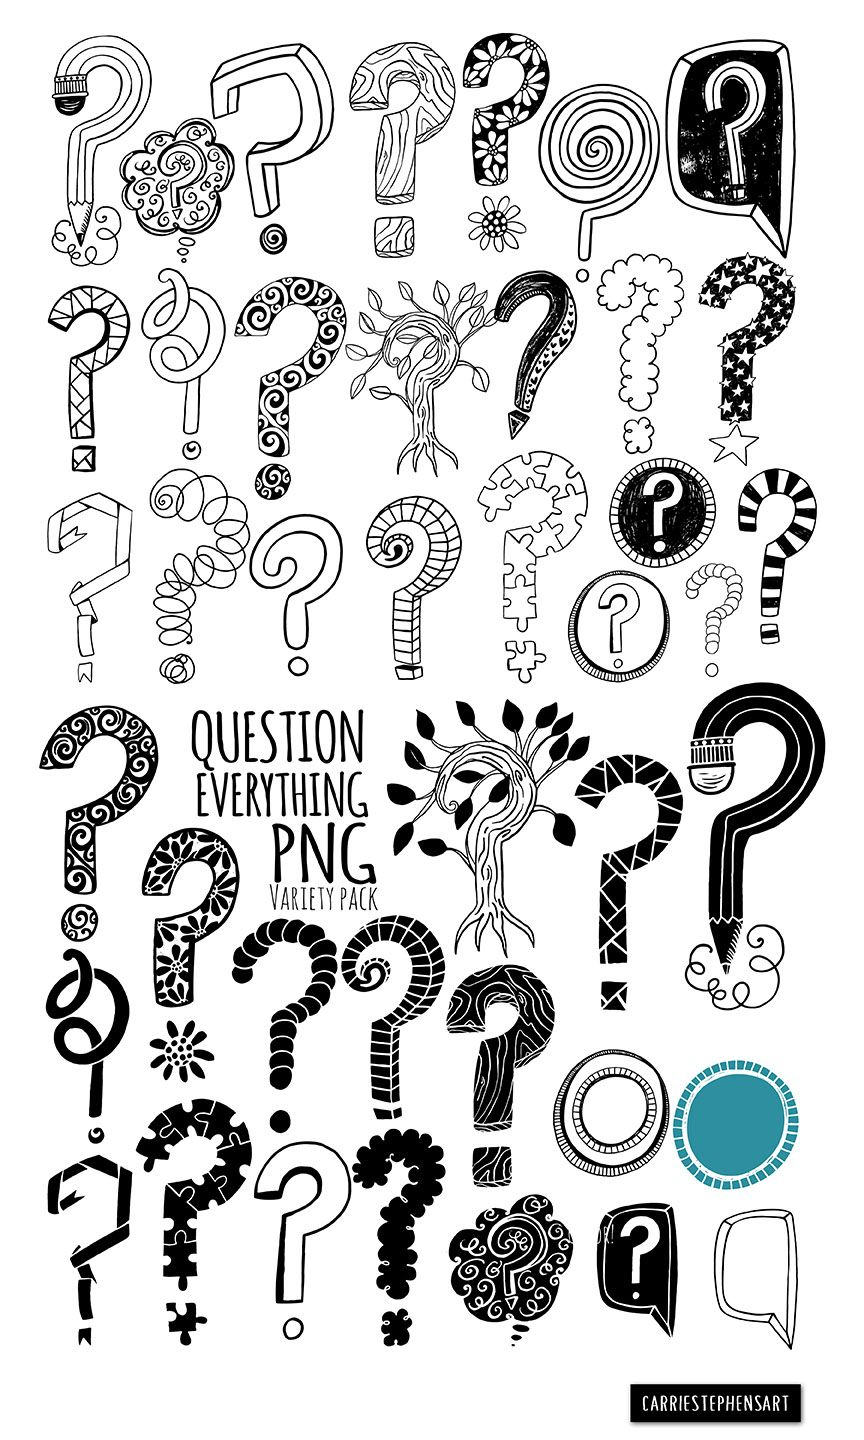 41++ Pictures of question marks clipart ideas